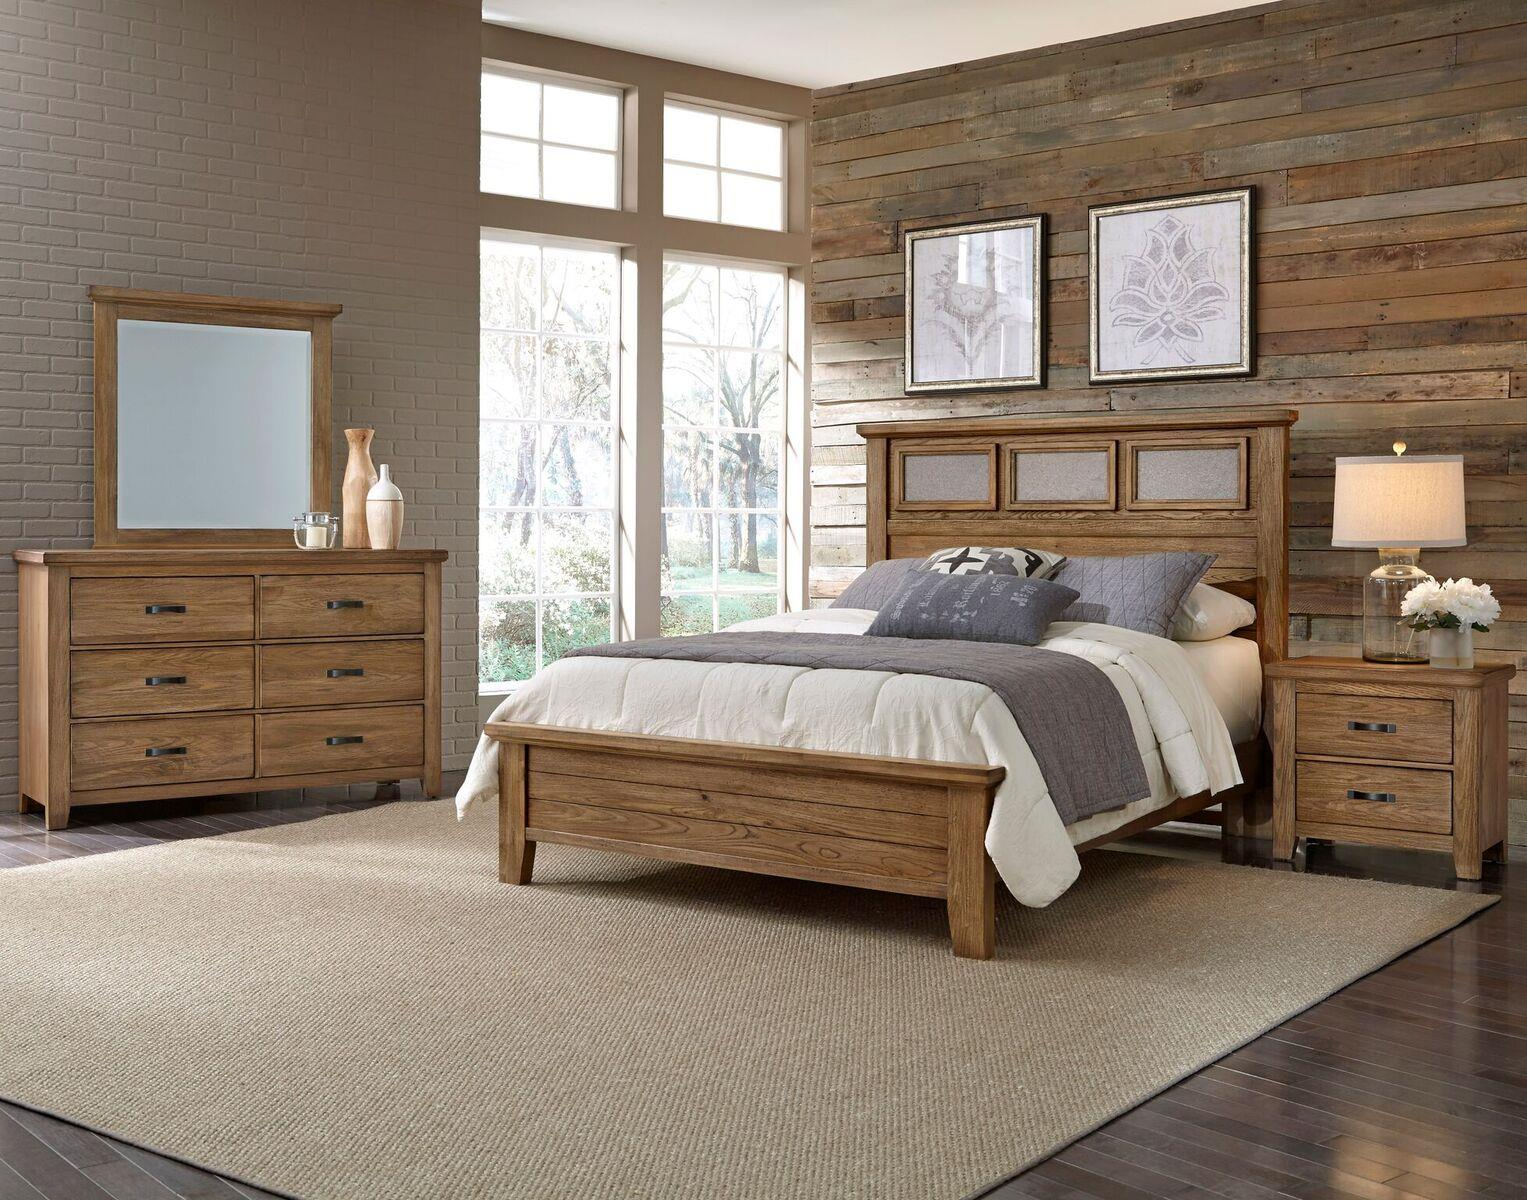 q group bedroom american city products queen bassett number value modern item vaughan